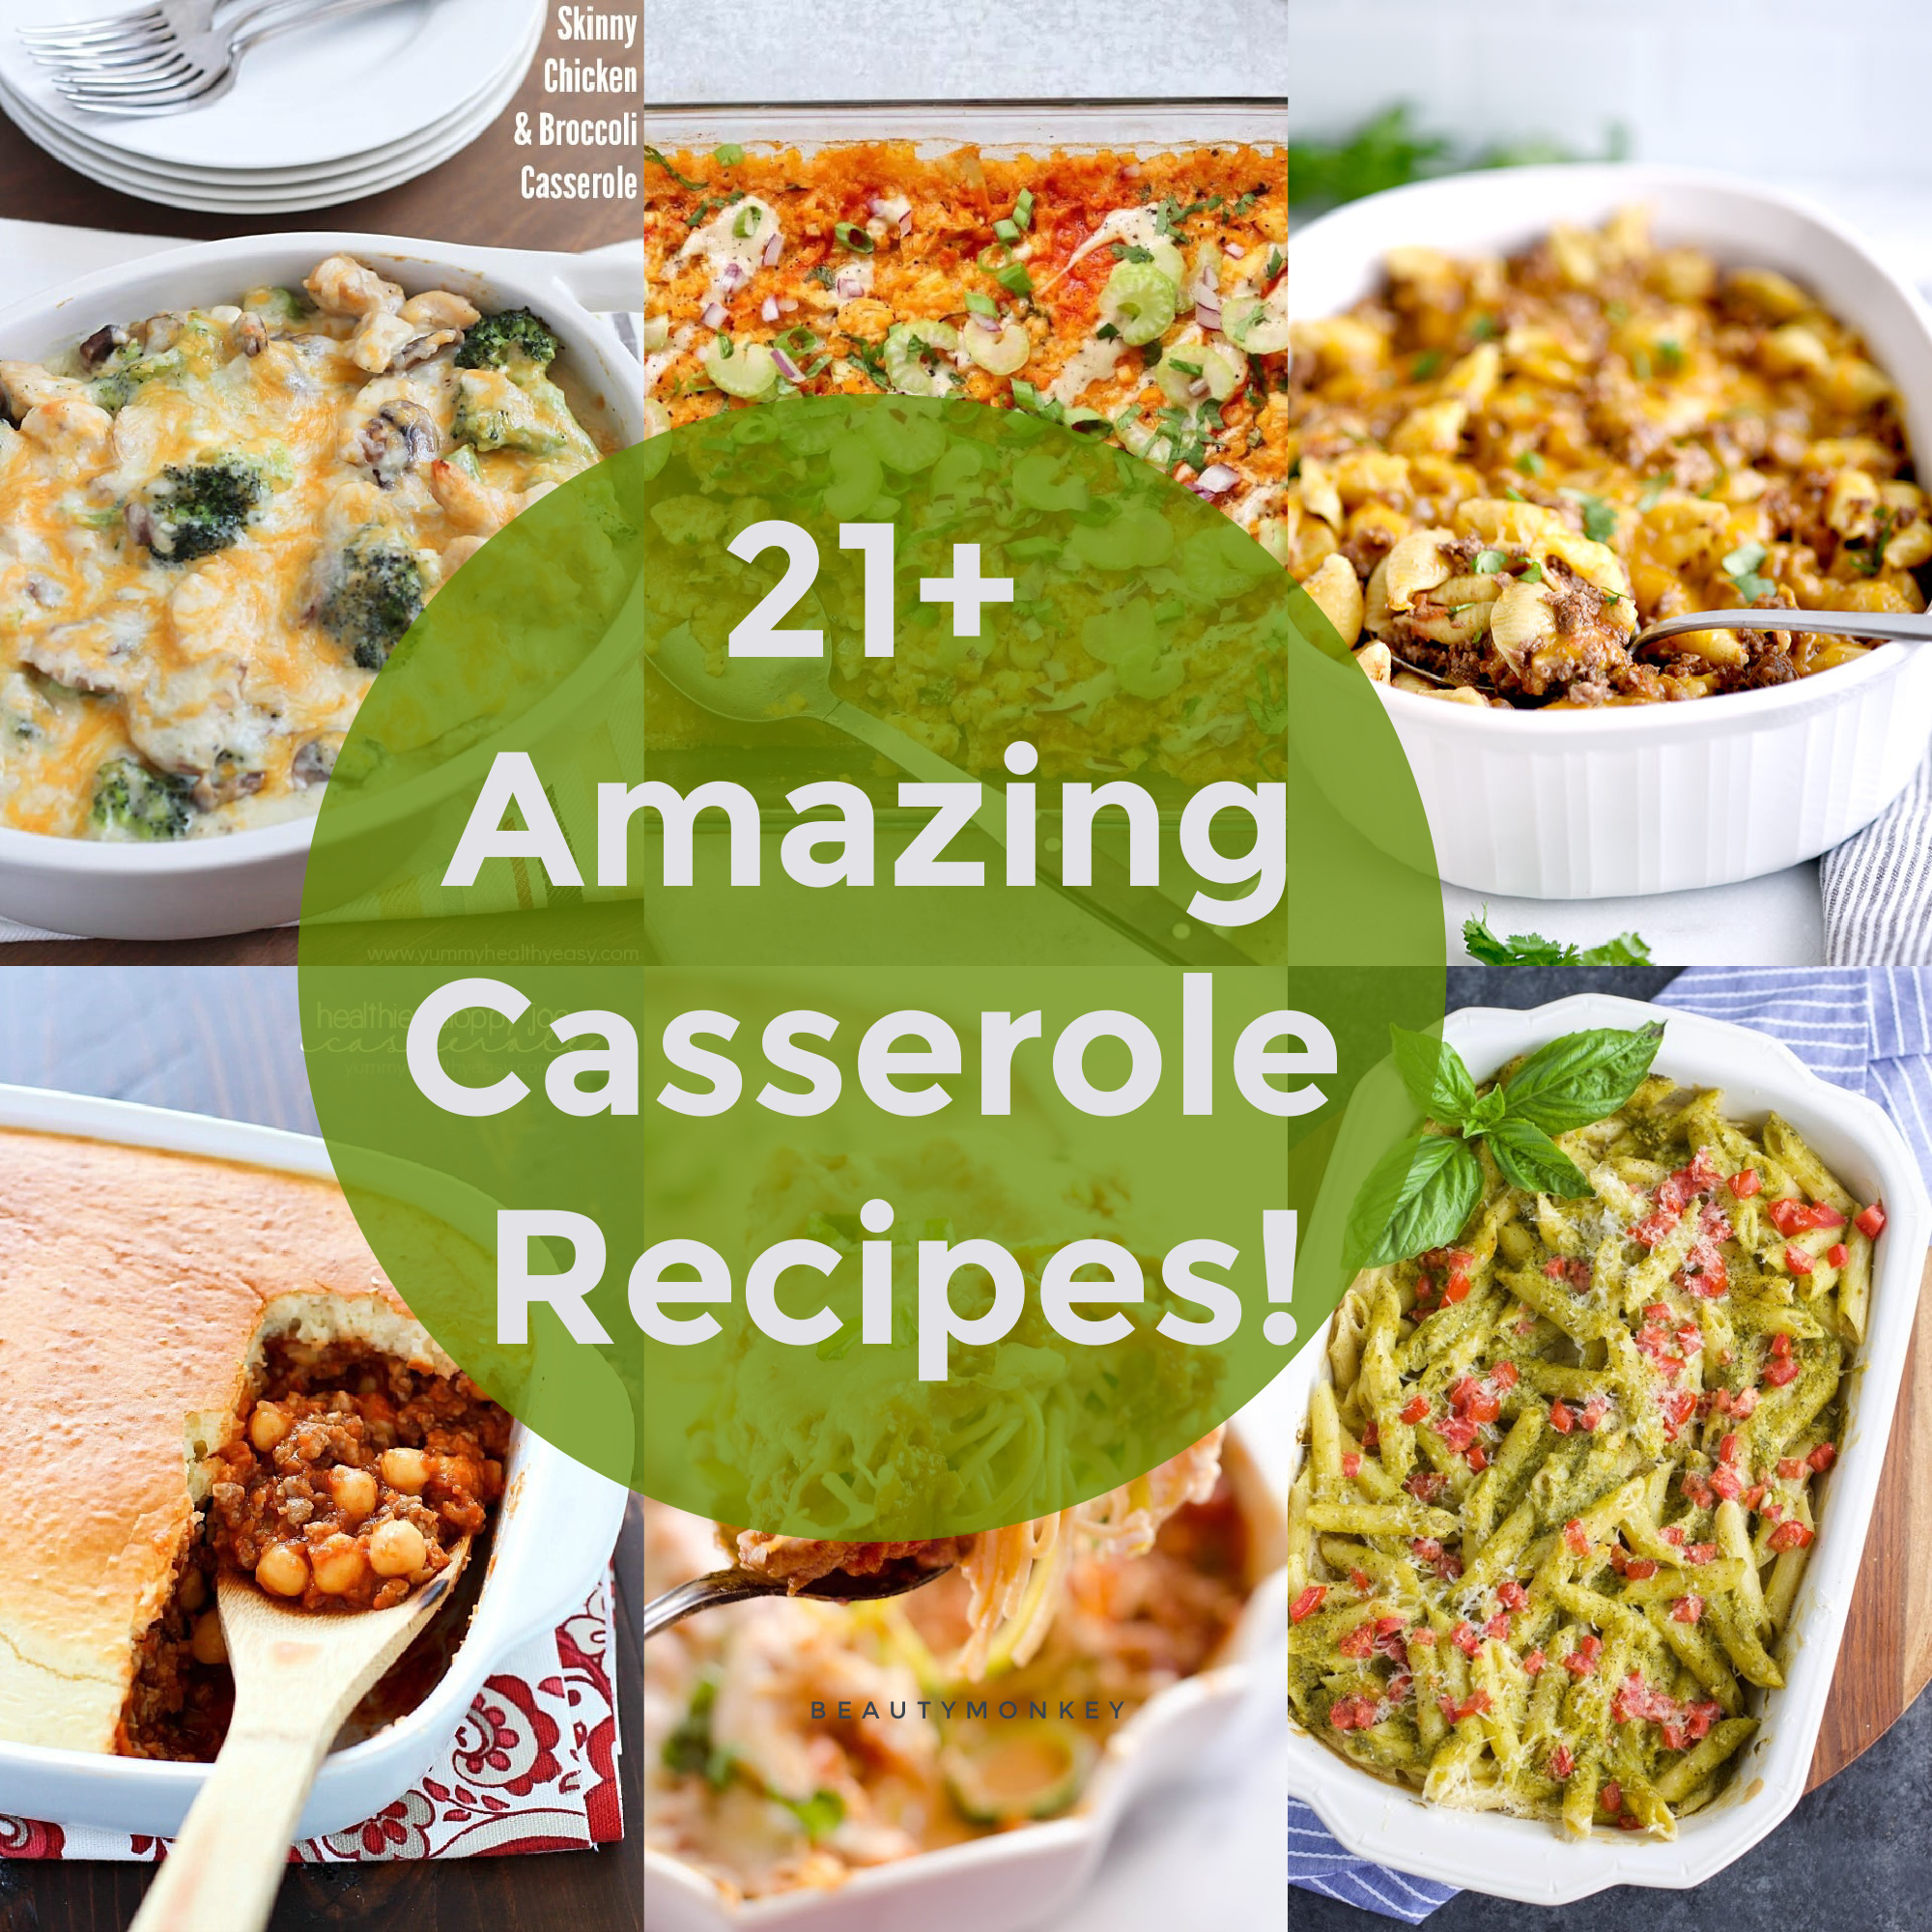 Check out these 21+ Casserole Recipes you're sure to LOVE! I don't know about you, but I love a good casserole and these are the best of the best! #casserole #easydinner #recipes #dinnerrecipe #easytofreeze #yummy #healthy #easy #yummyhealthyeasy via @jennikolaus